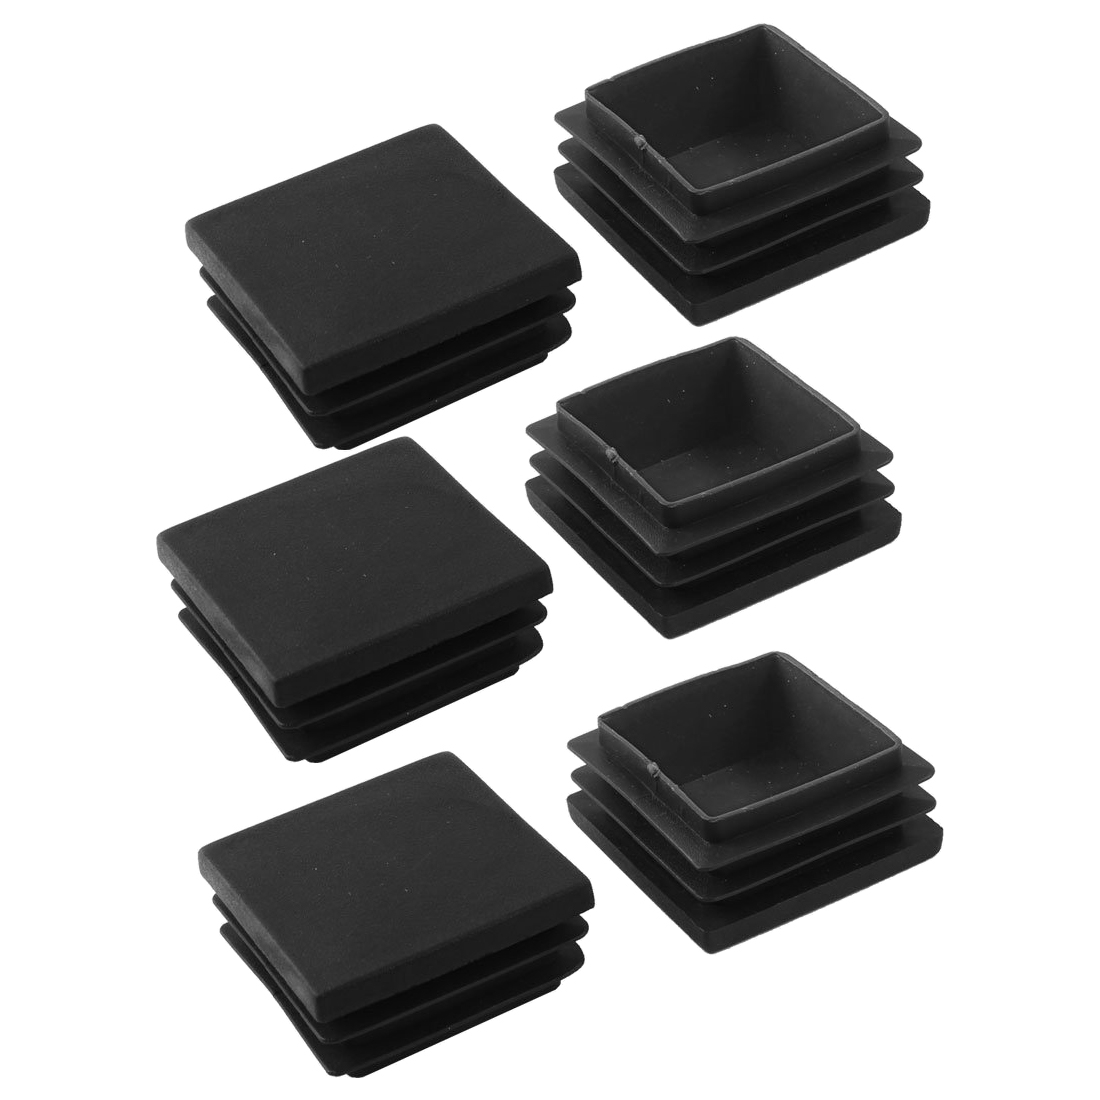 Promotion! 6 Pcs Black Plastic Closure End Caps Square Tubing Tube Foot Cover 40 X 40 Mm